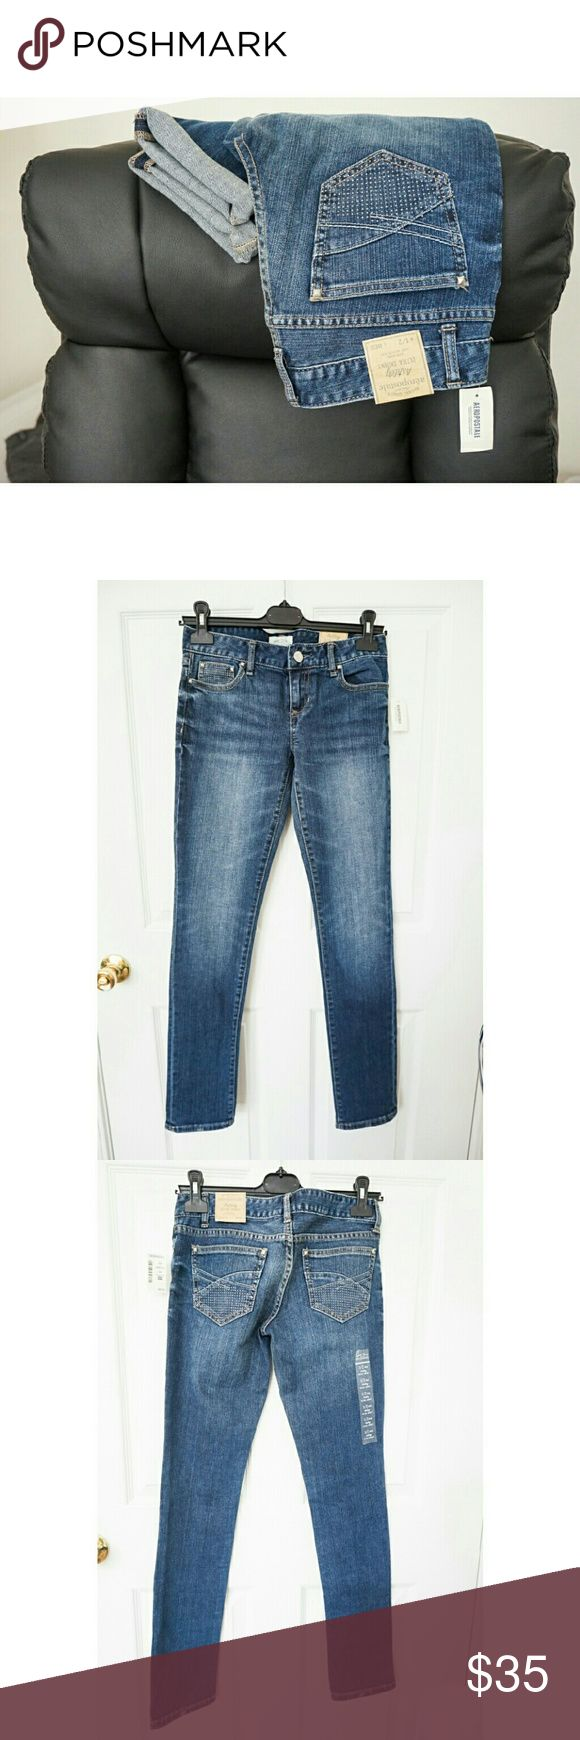 "🎉NEW🎉Aeropostale Skinny Jeans New with tags. Sz 1/2 Reg. Flat meas.: W14""; Inseam 31"". 98% cotton, 2% spandex. Same day shipping. 20% bundle discount, 3 items. Aeropostale Jeans Skinny"